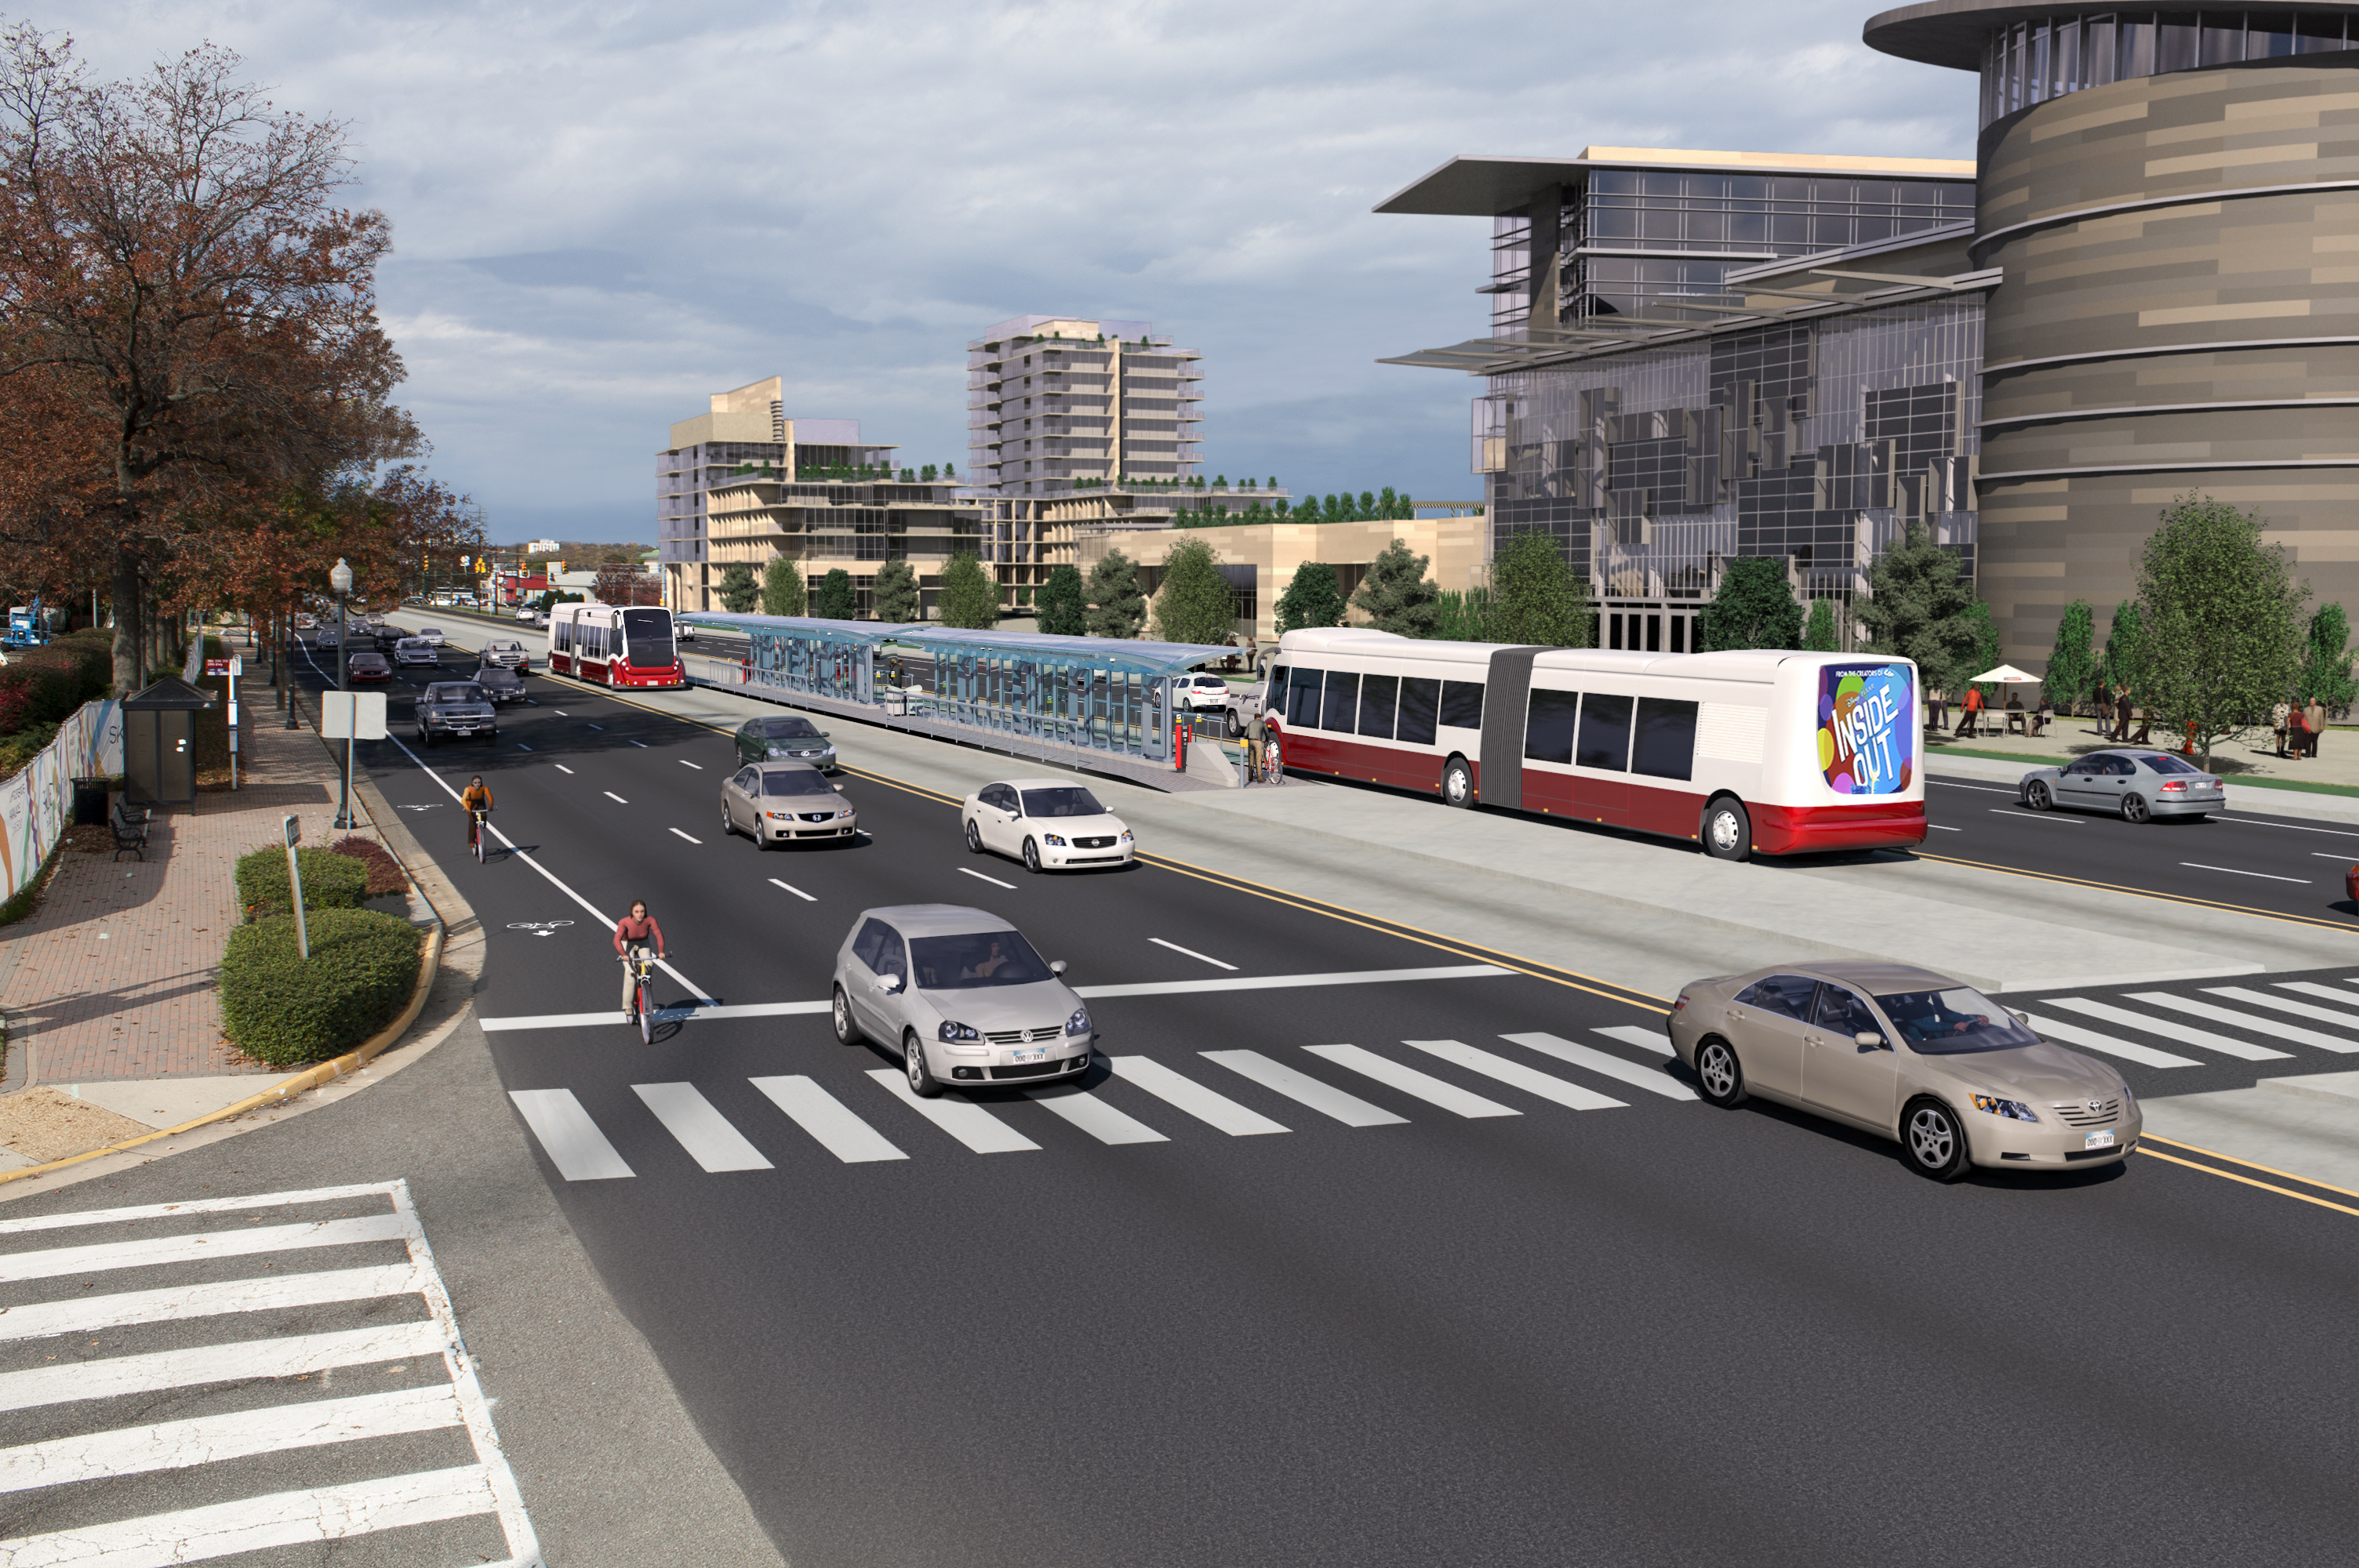 To help ease Va. 7 congestion, a plan for bus-only lanes